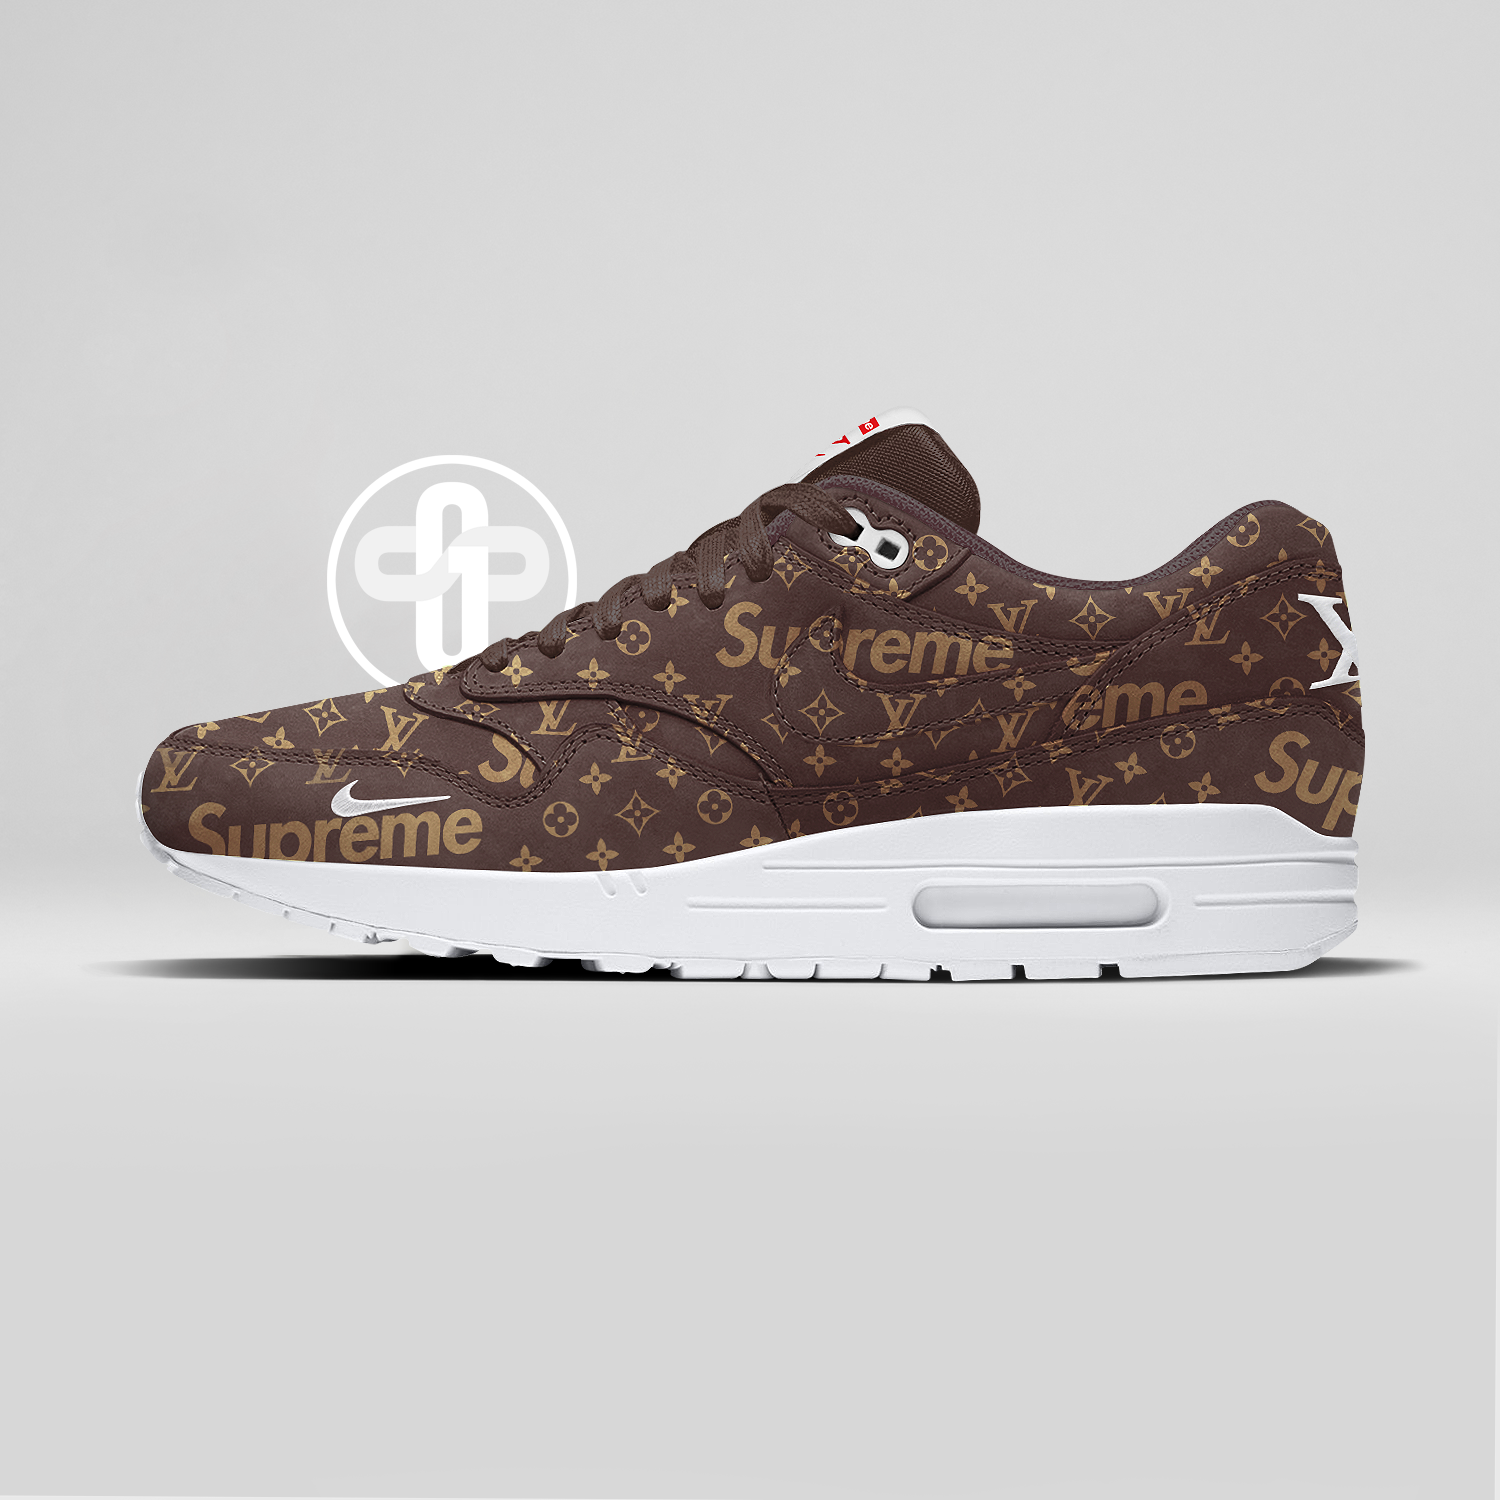 best service 3f6fa 6285a Louis Vuitton x Supreme x Nike Air Max 1 Dark Chocolate